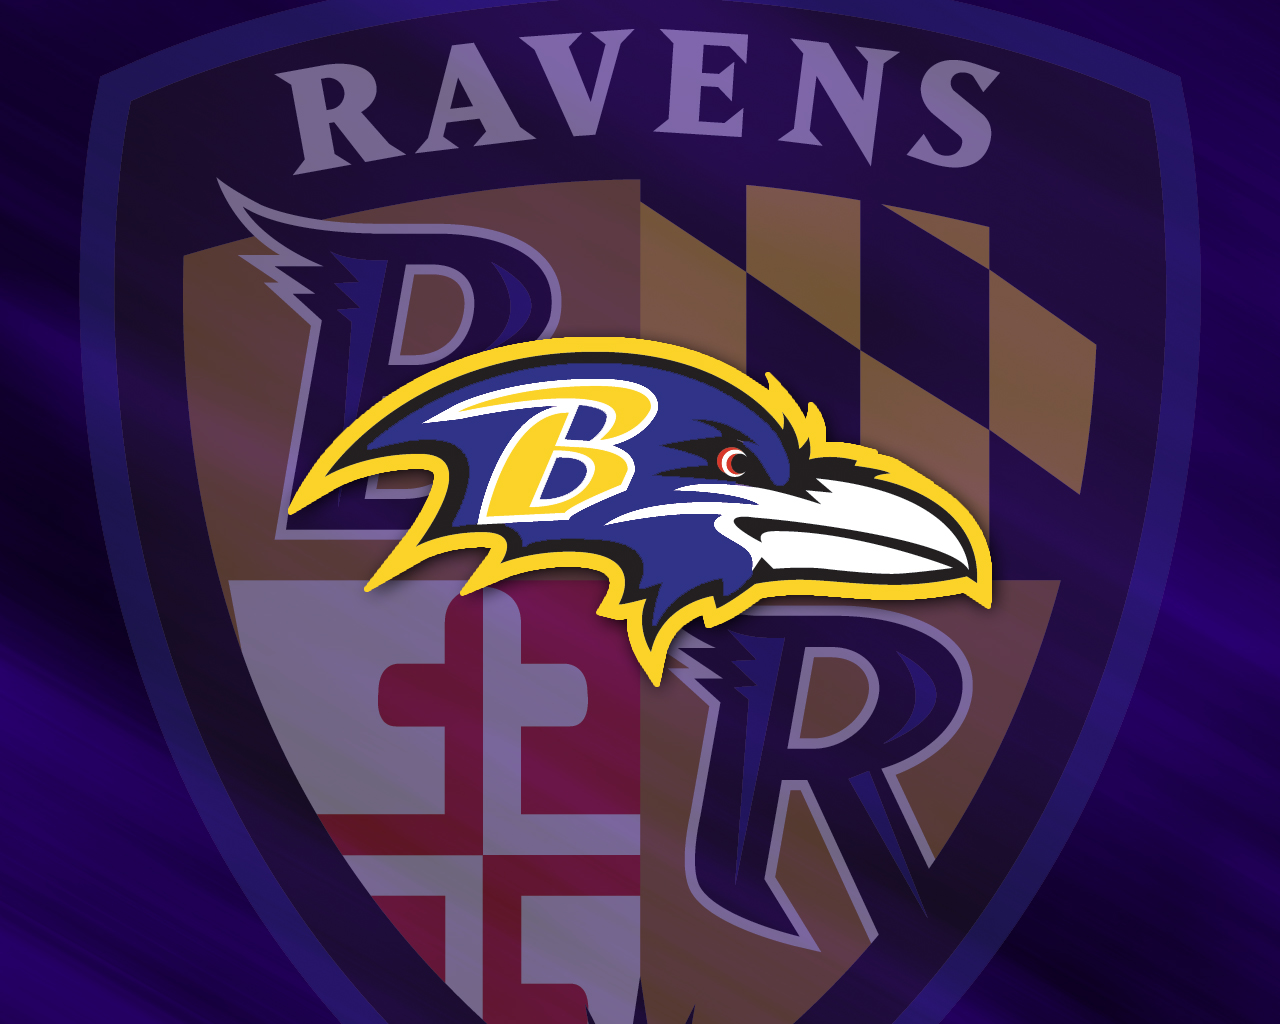 Ravens logo Wallpaper